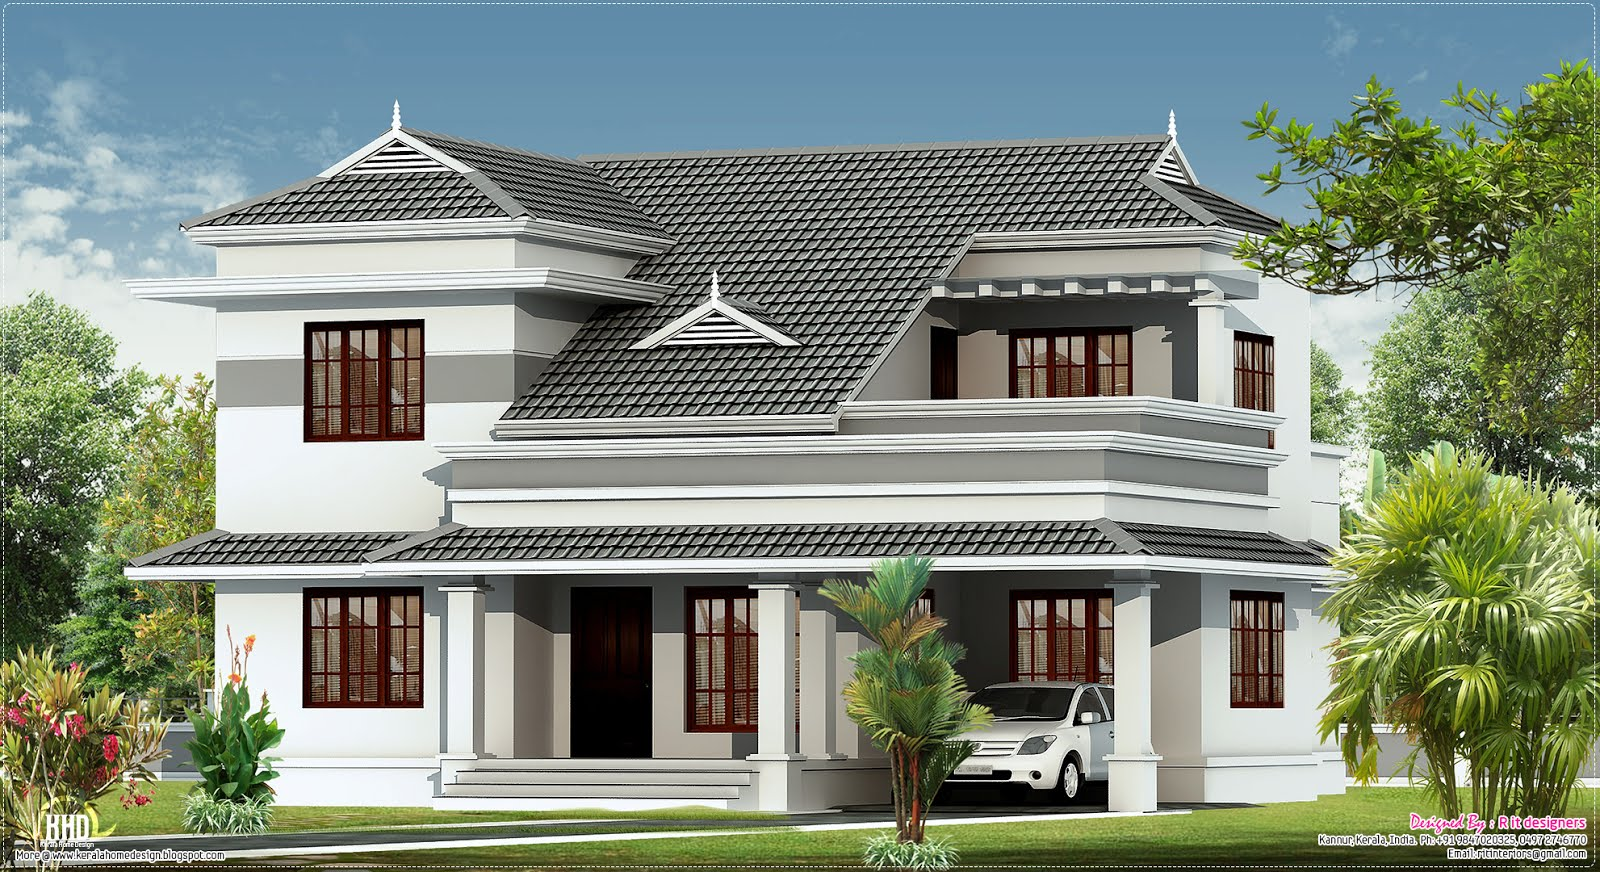 New villa design in 2250 kerala home design and floor plans - New house design ...